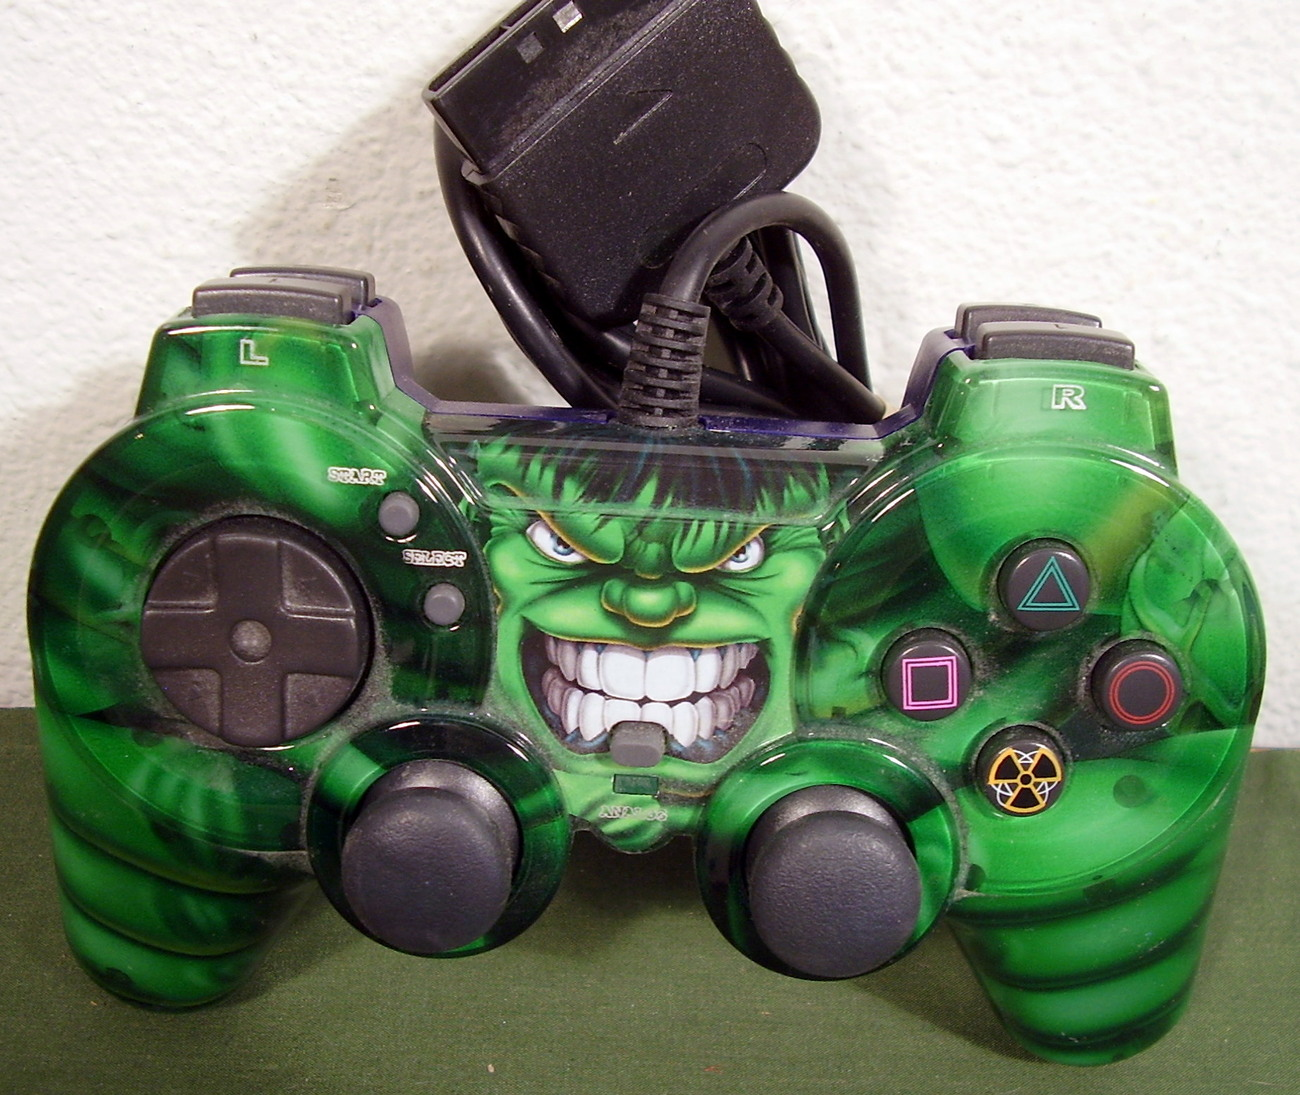 Incredible hulk controller for ps2 playstation 2 used